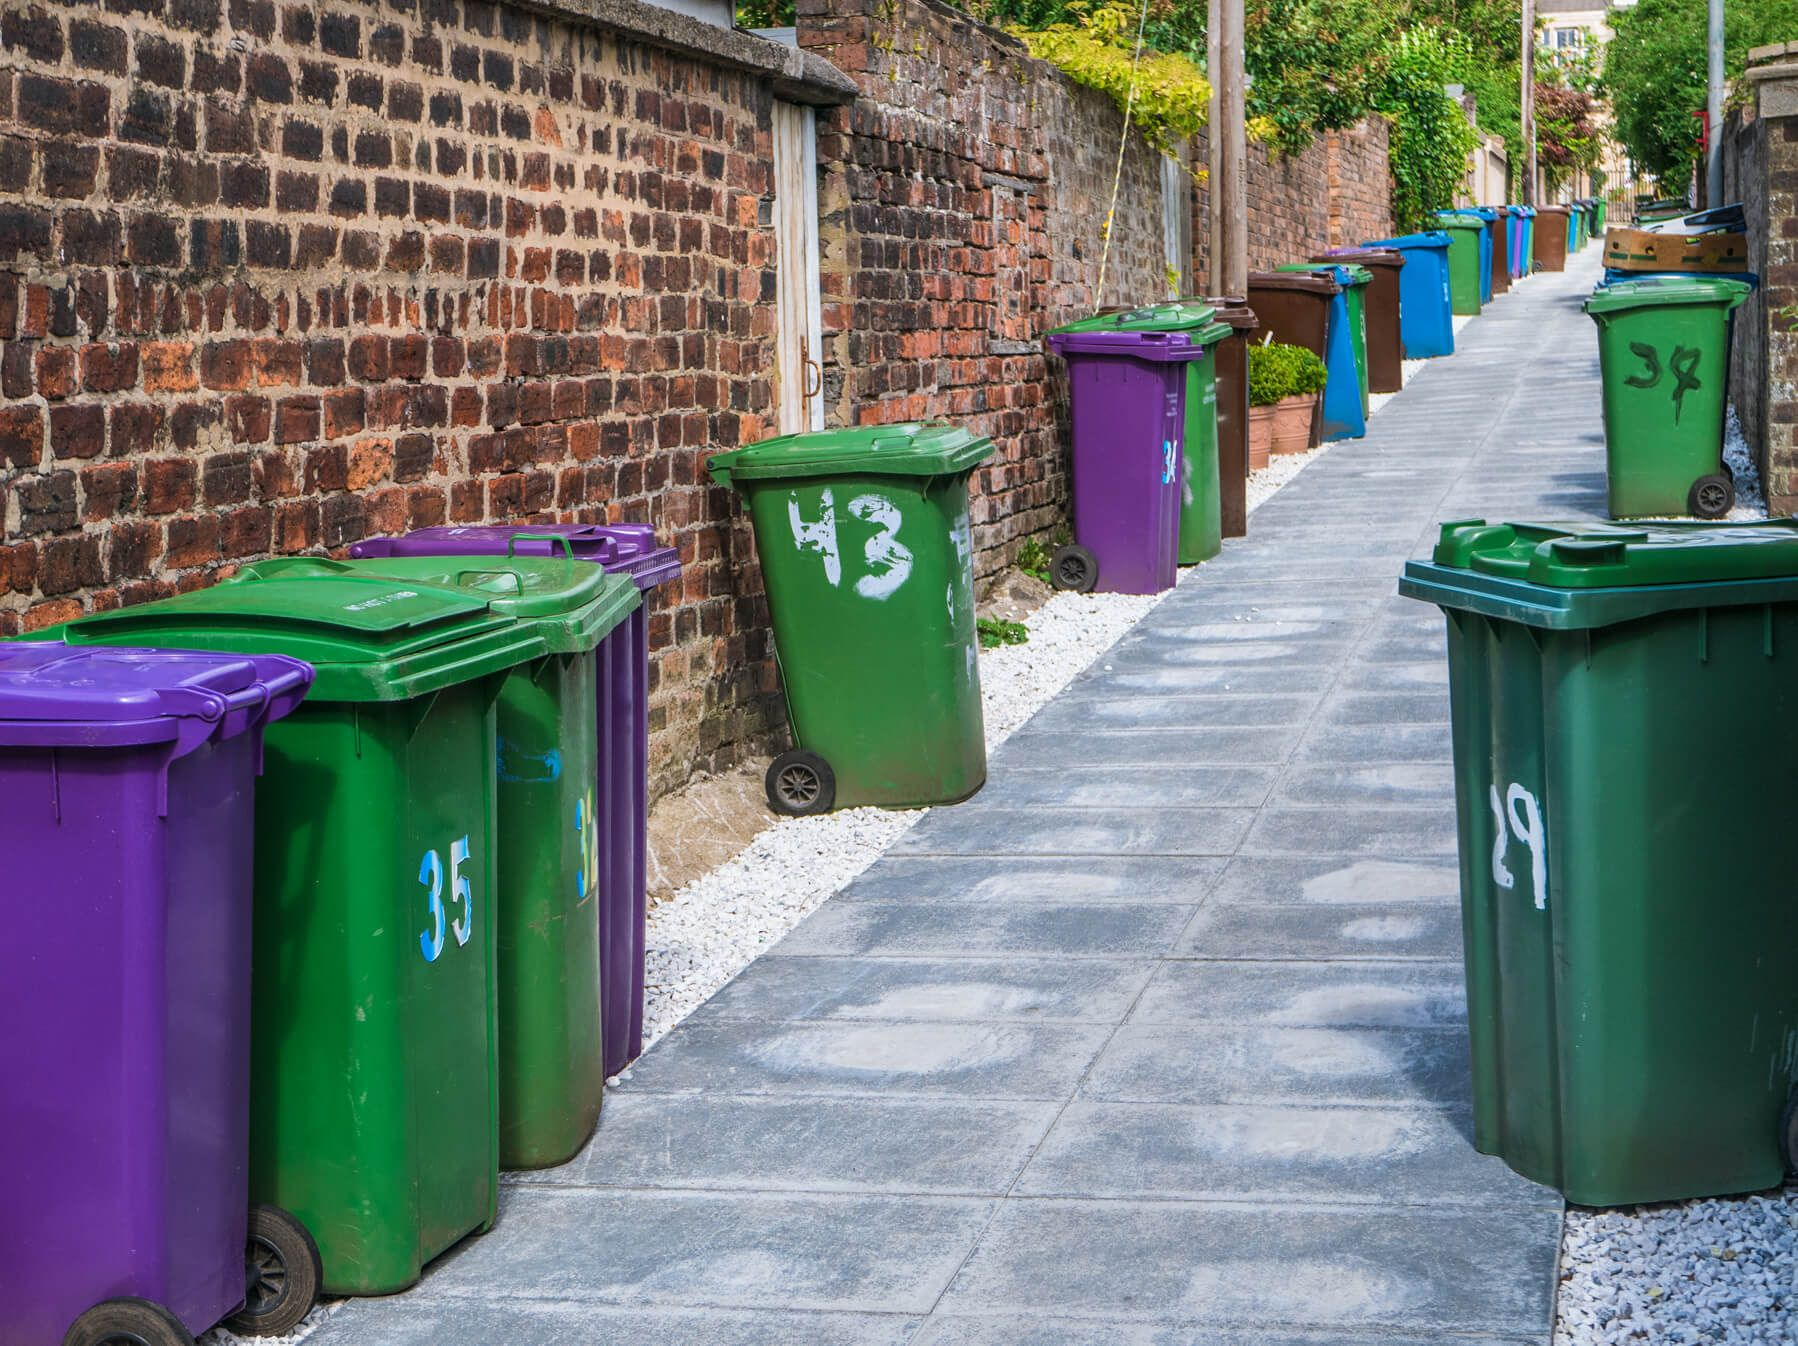 Green and purple bins street